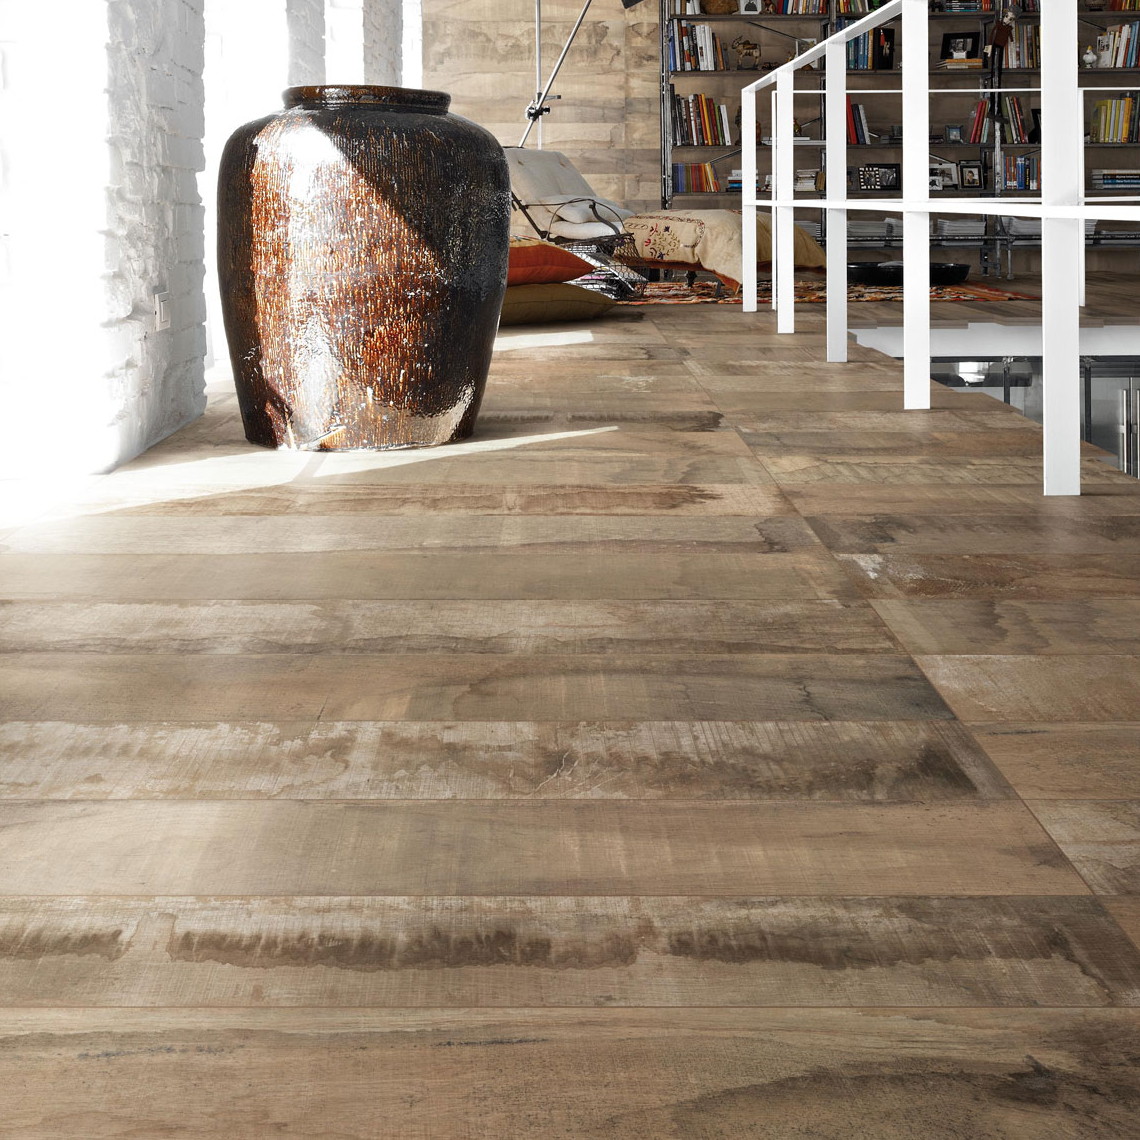 Industrial Flooring That Looks Like Wood: Provenza In-Essence Porcelain Tile Collection